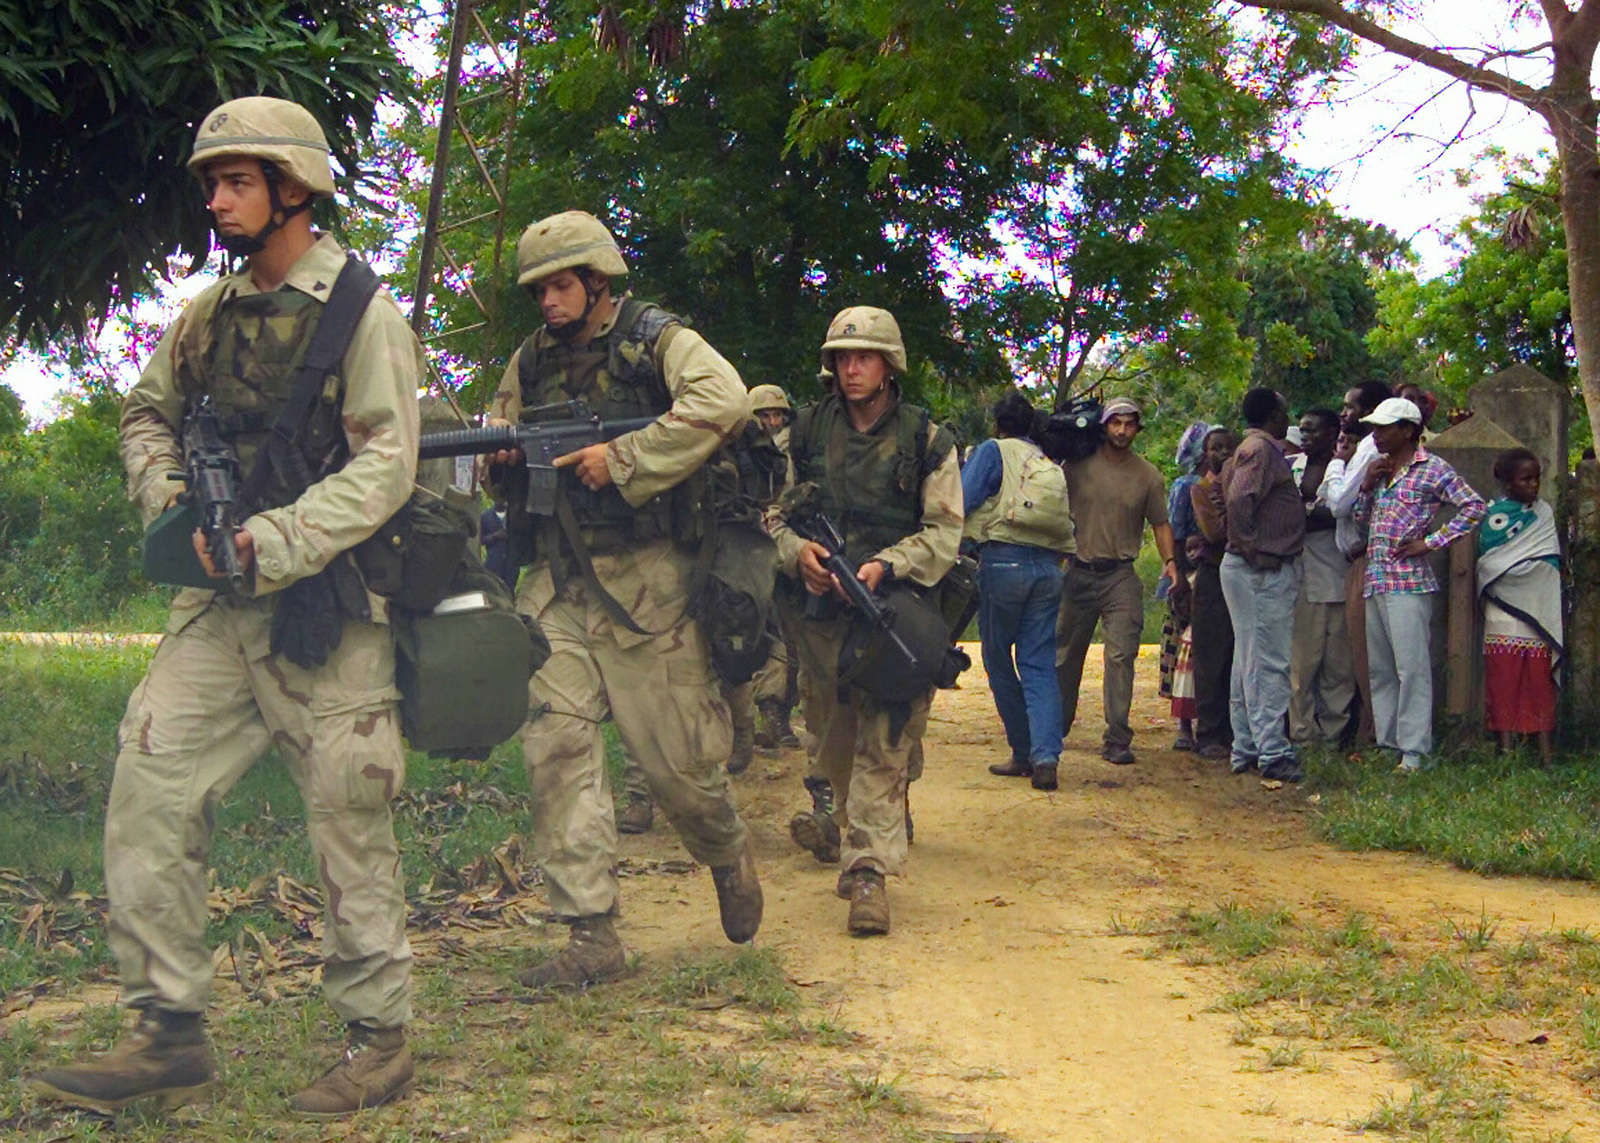 At a local village with the media in trail, Marines from the 24th Marine Expeditionary Unit (Special Operations Capable) (MEU SOC) provide security at a Medical and Dental Civil Affairs Project as part of Exercise EDGED MALLET 2003 in Manda Bay, Kenya